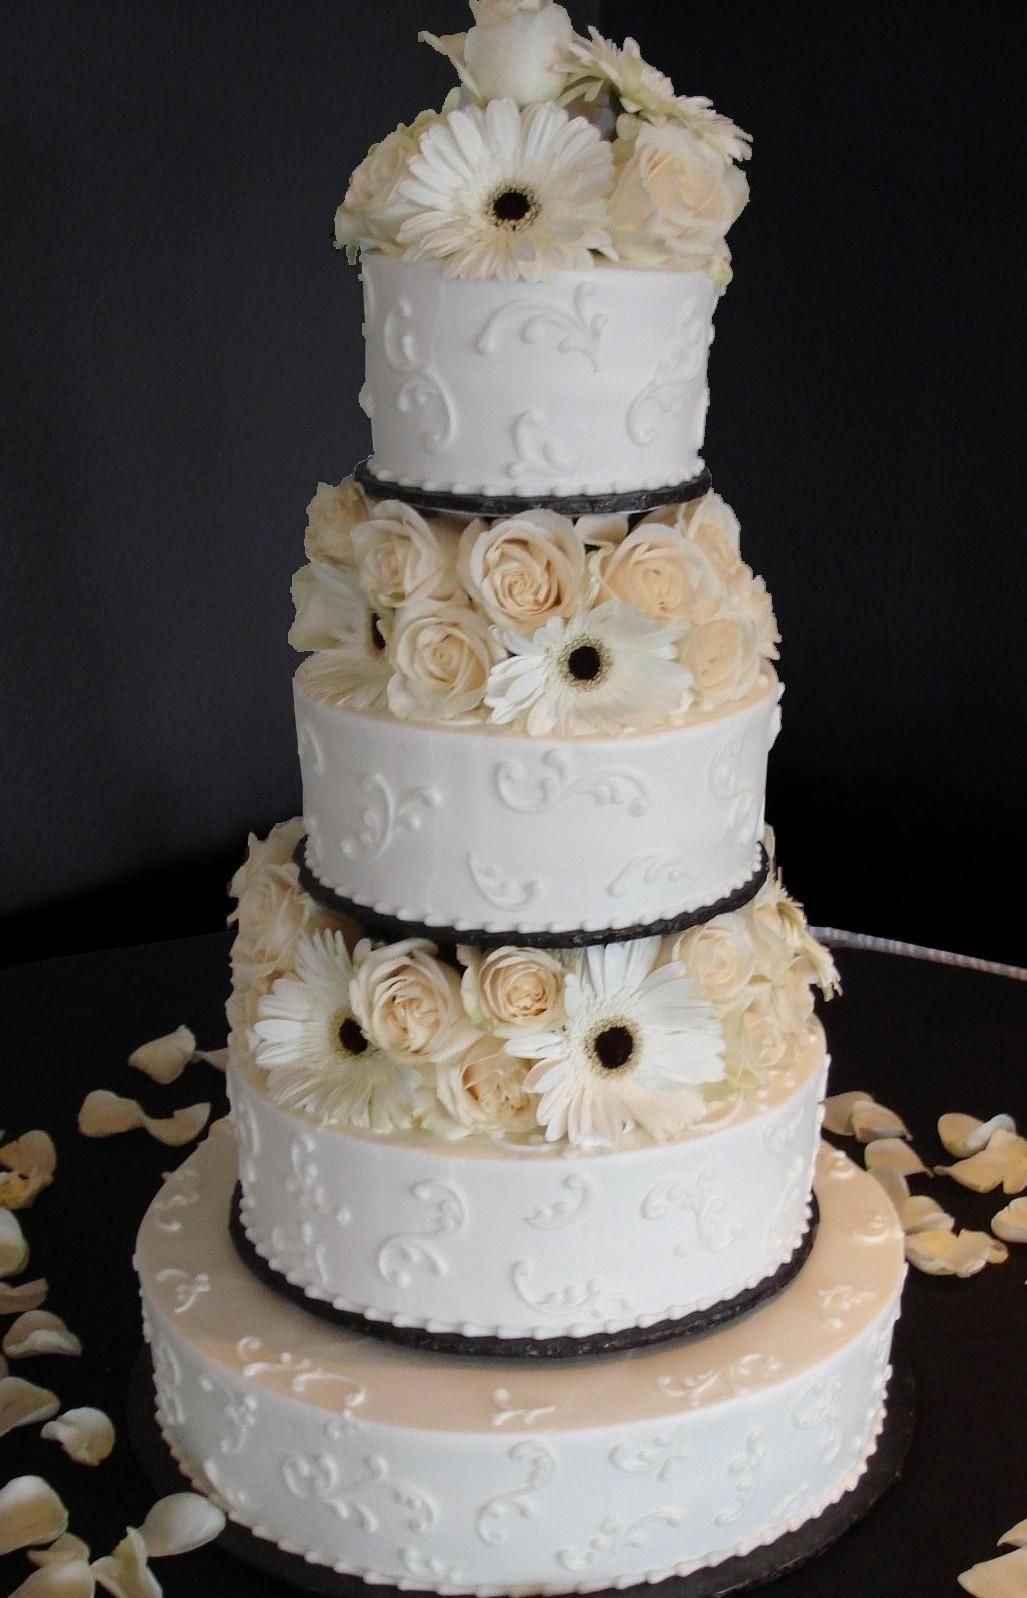 white buttercream iced, 4 tier round wedding cake decorated with a